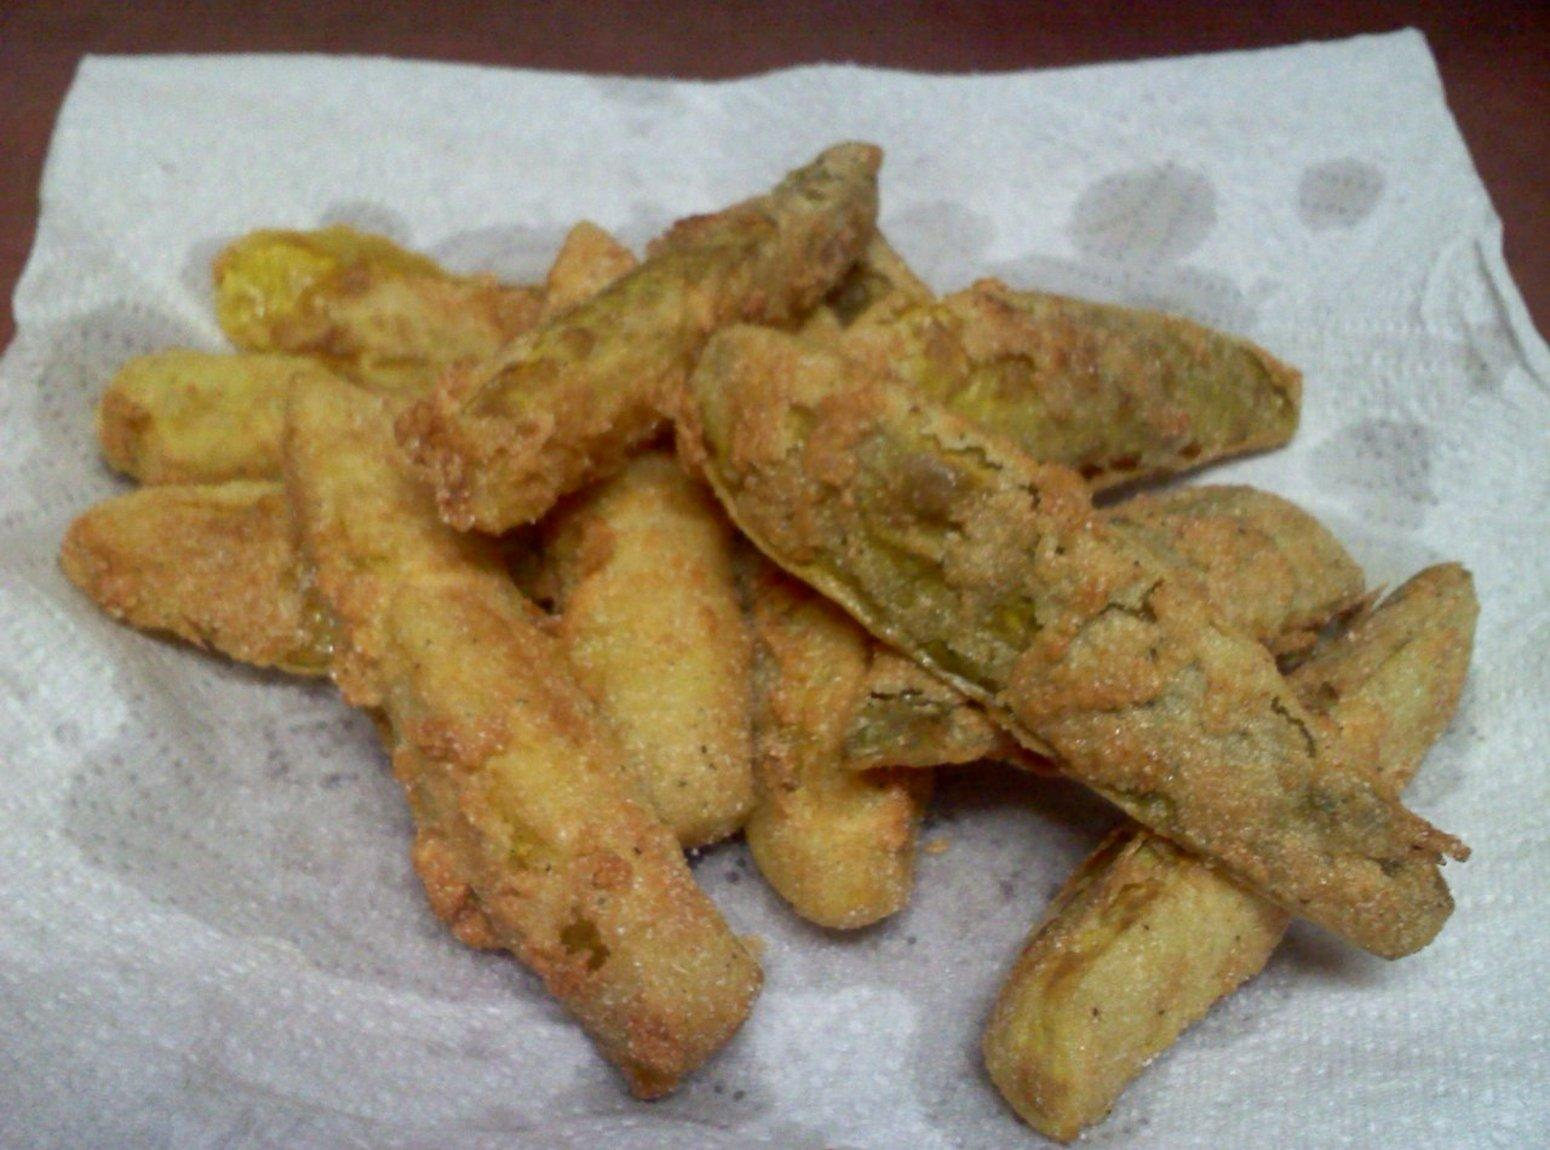 Fried Dill Pickle Spears Recipe